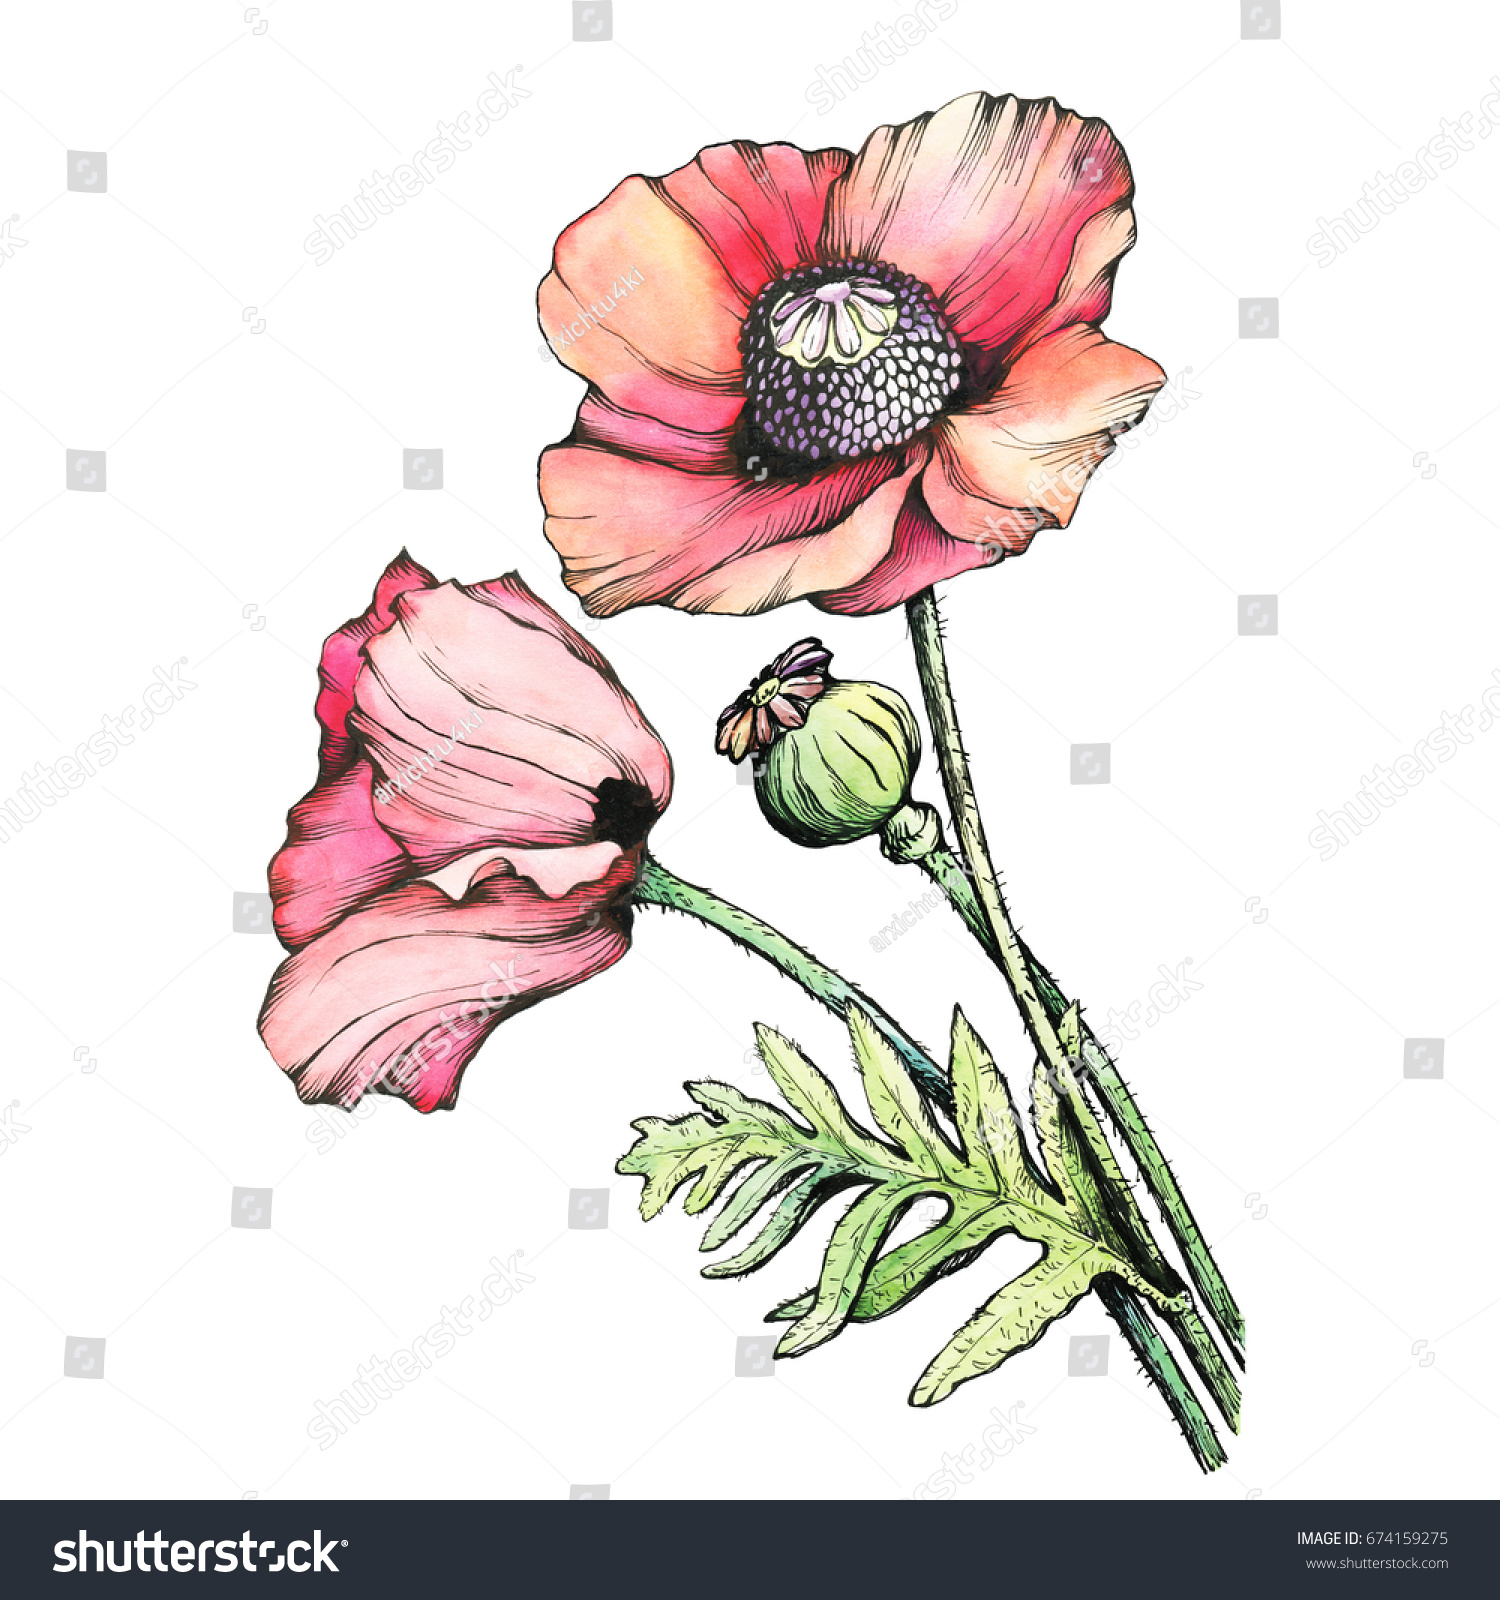 Graphic Branch Red Poppies Flowers Bud Stock Illustration 674159275